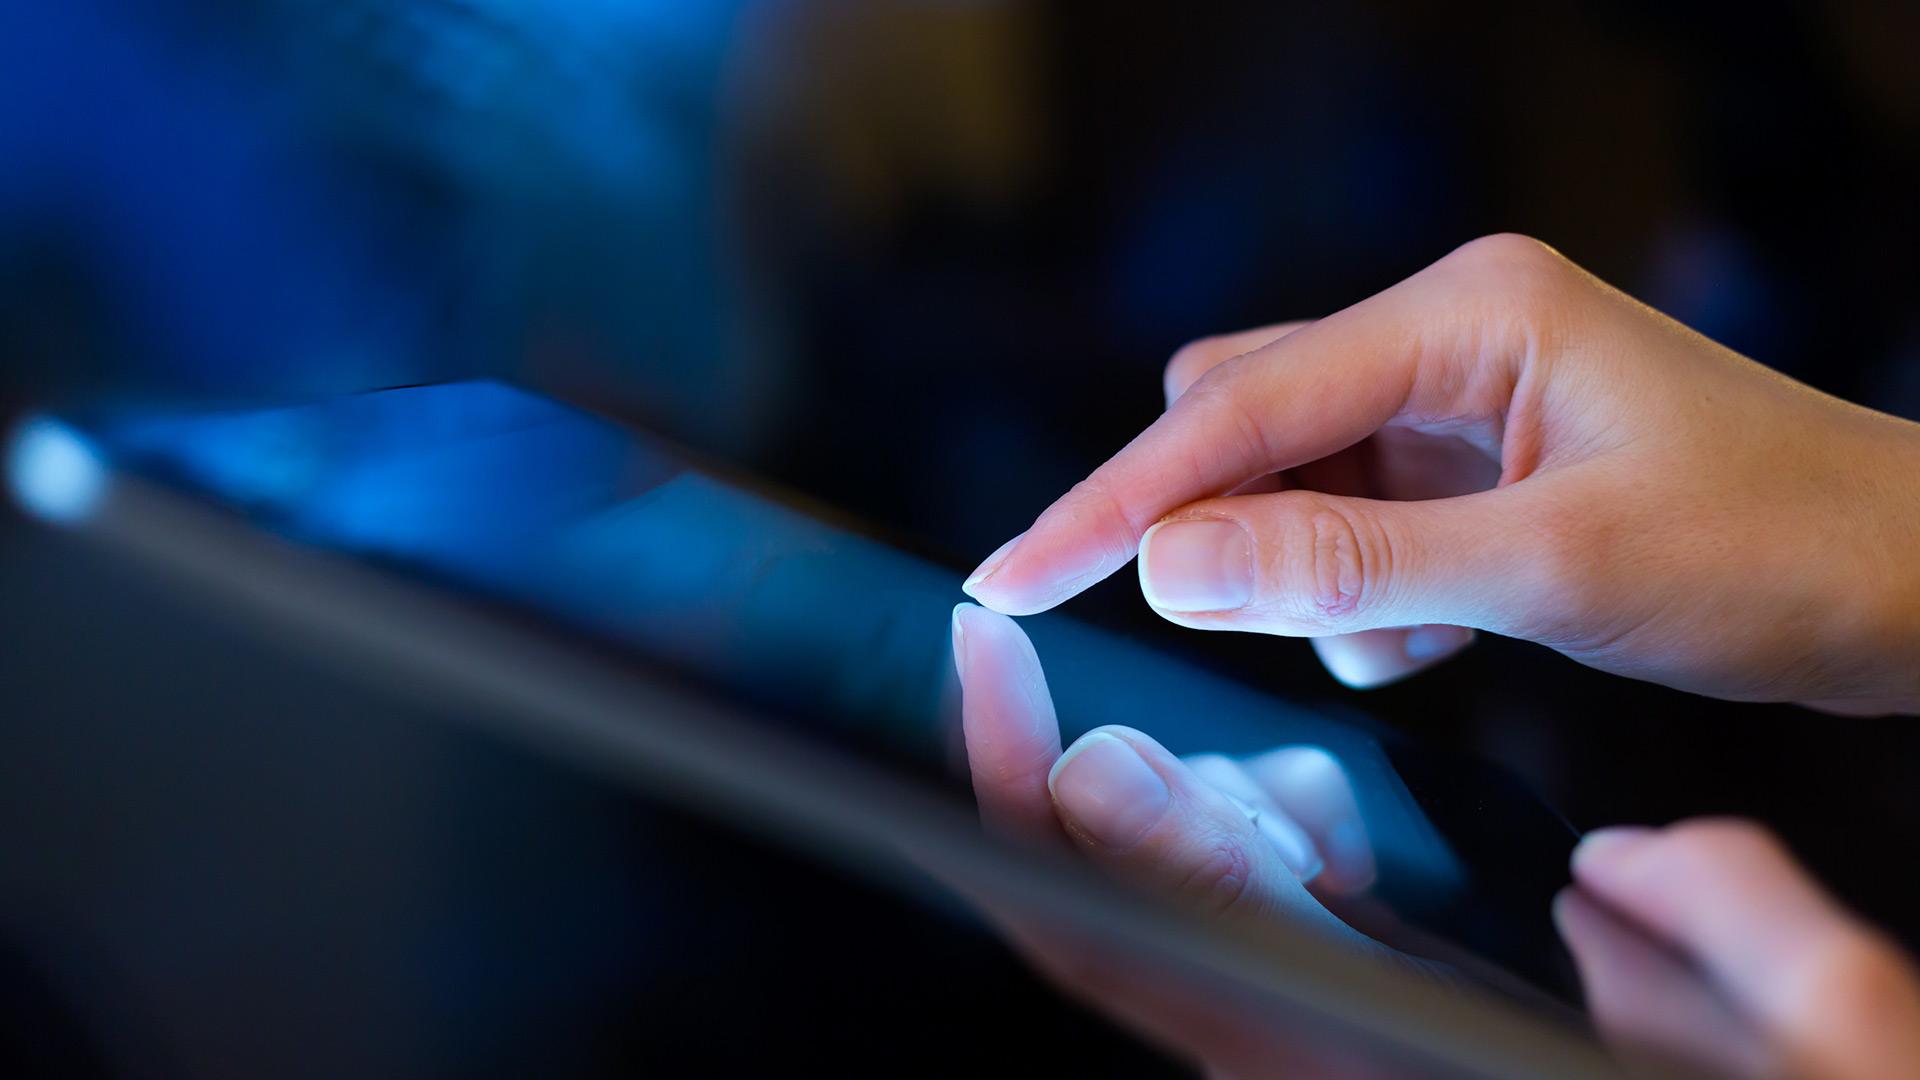 Close-up of hand scrolling on tablet